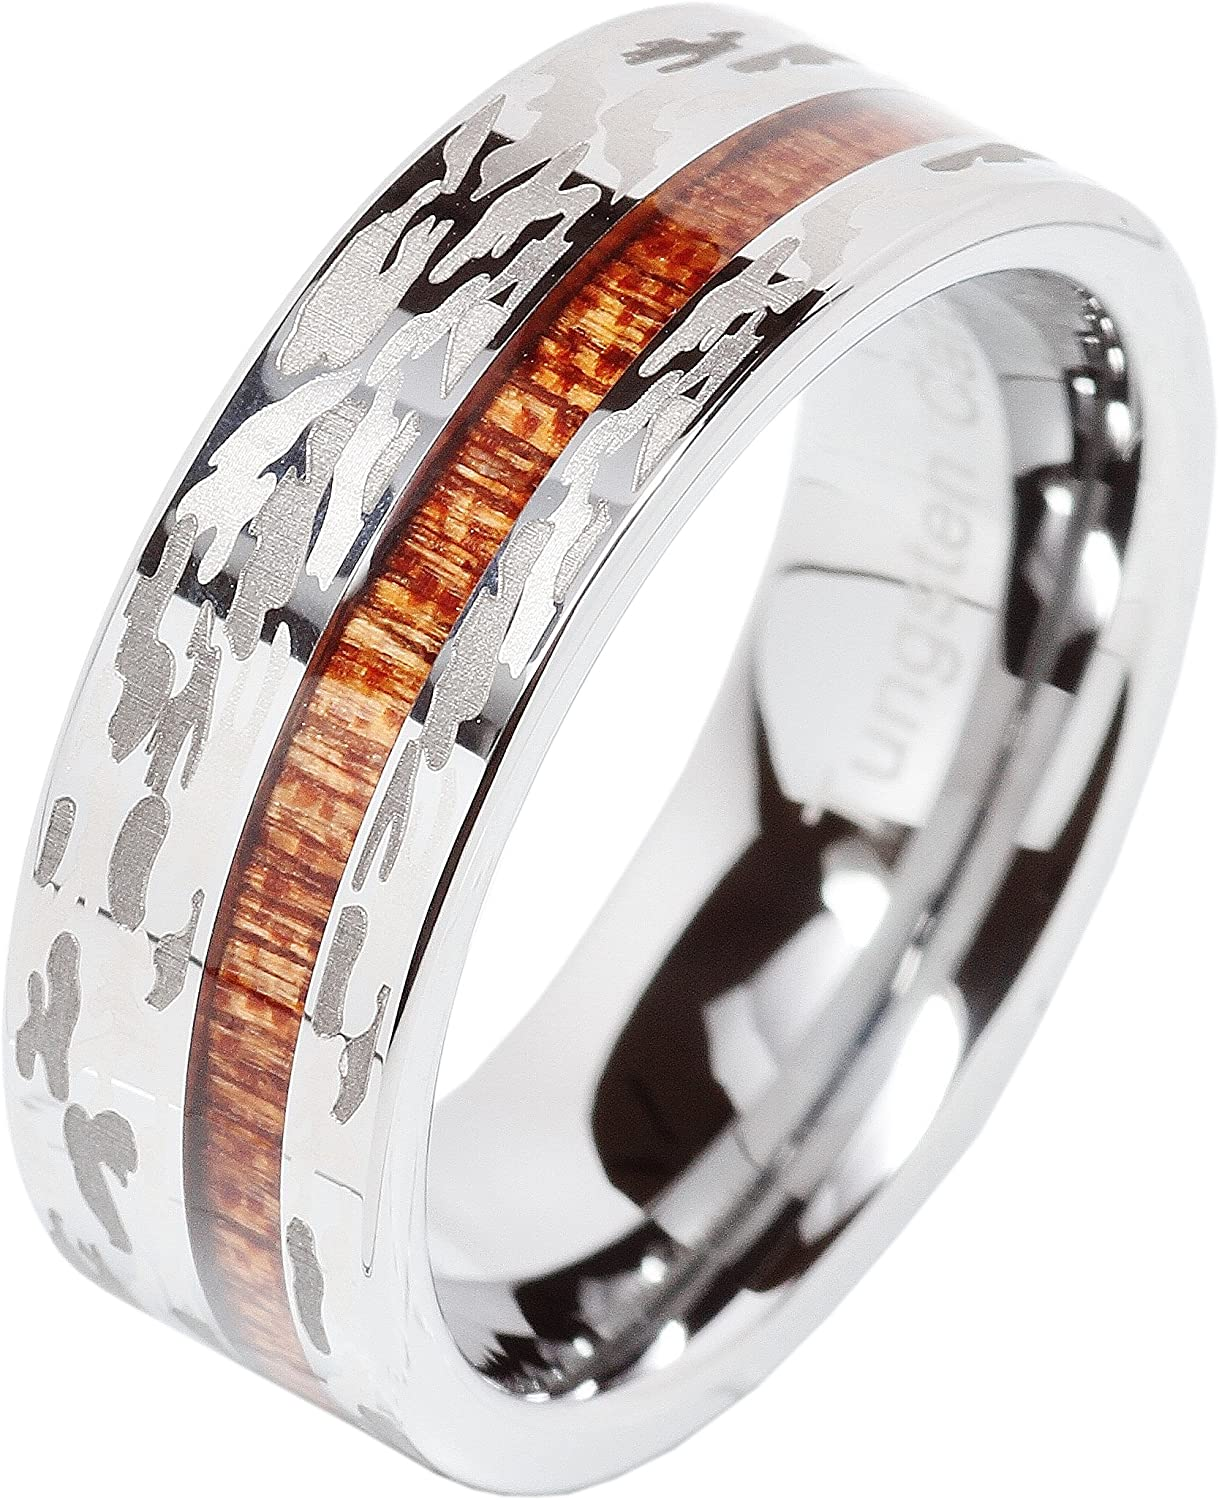 100S JEWELRY Mens Tungsten Ring Camo Army Hunting Wood Inlay Silver Wedding Band Comfort Fit Size 8-15